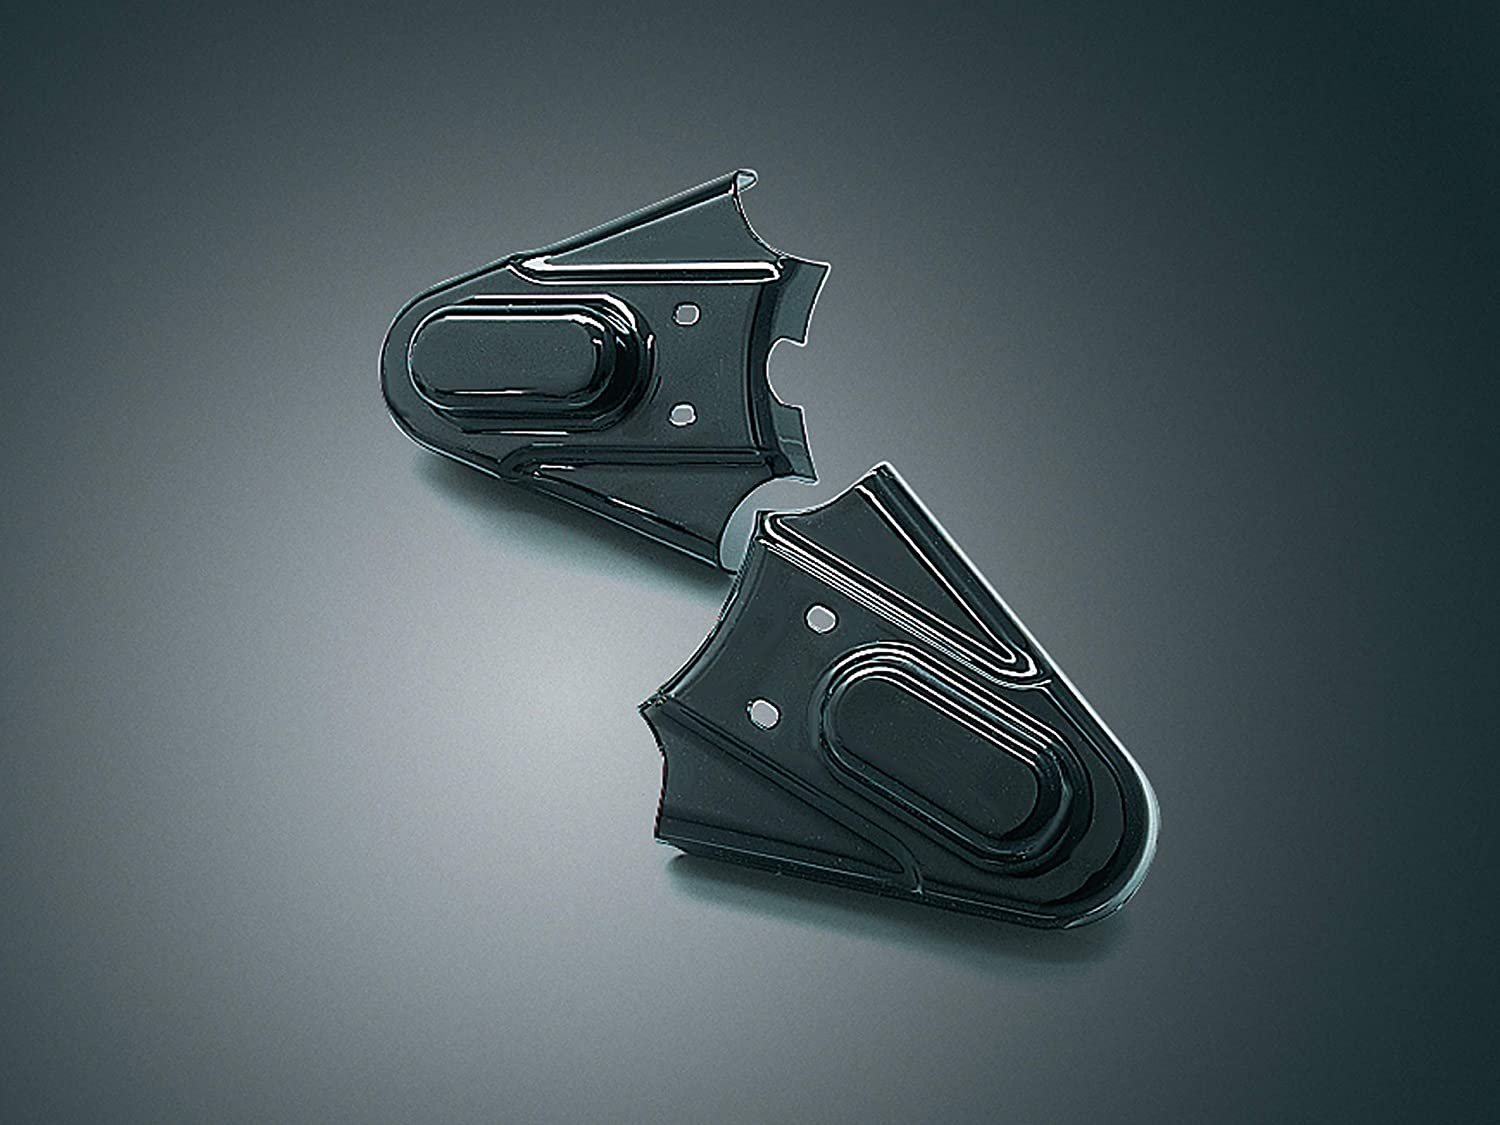 Kuryakyn 8202 Motorcycle Accent Accessory: Rear Axle Phantom Covers for 1986-2007 Harley-Davidson Softail Motorcycles, Gloss Black